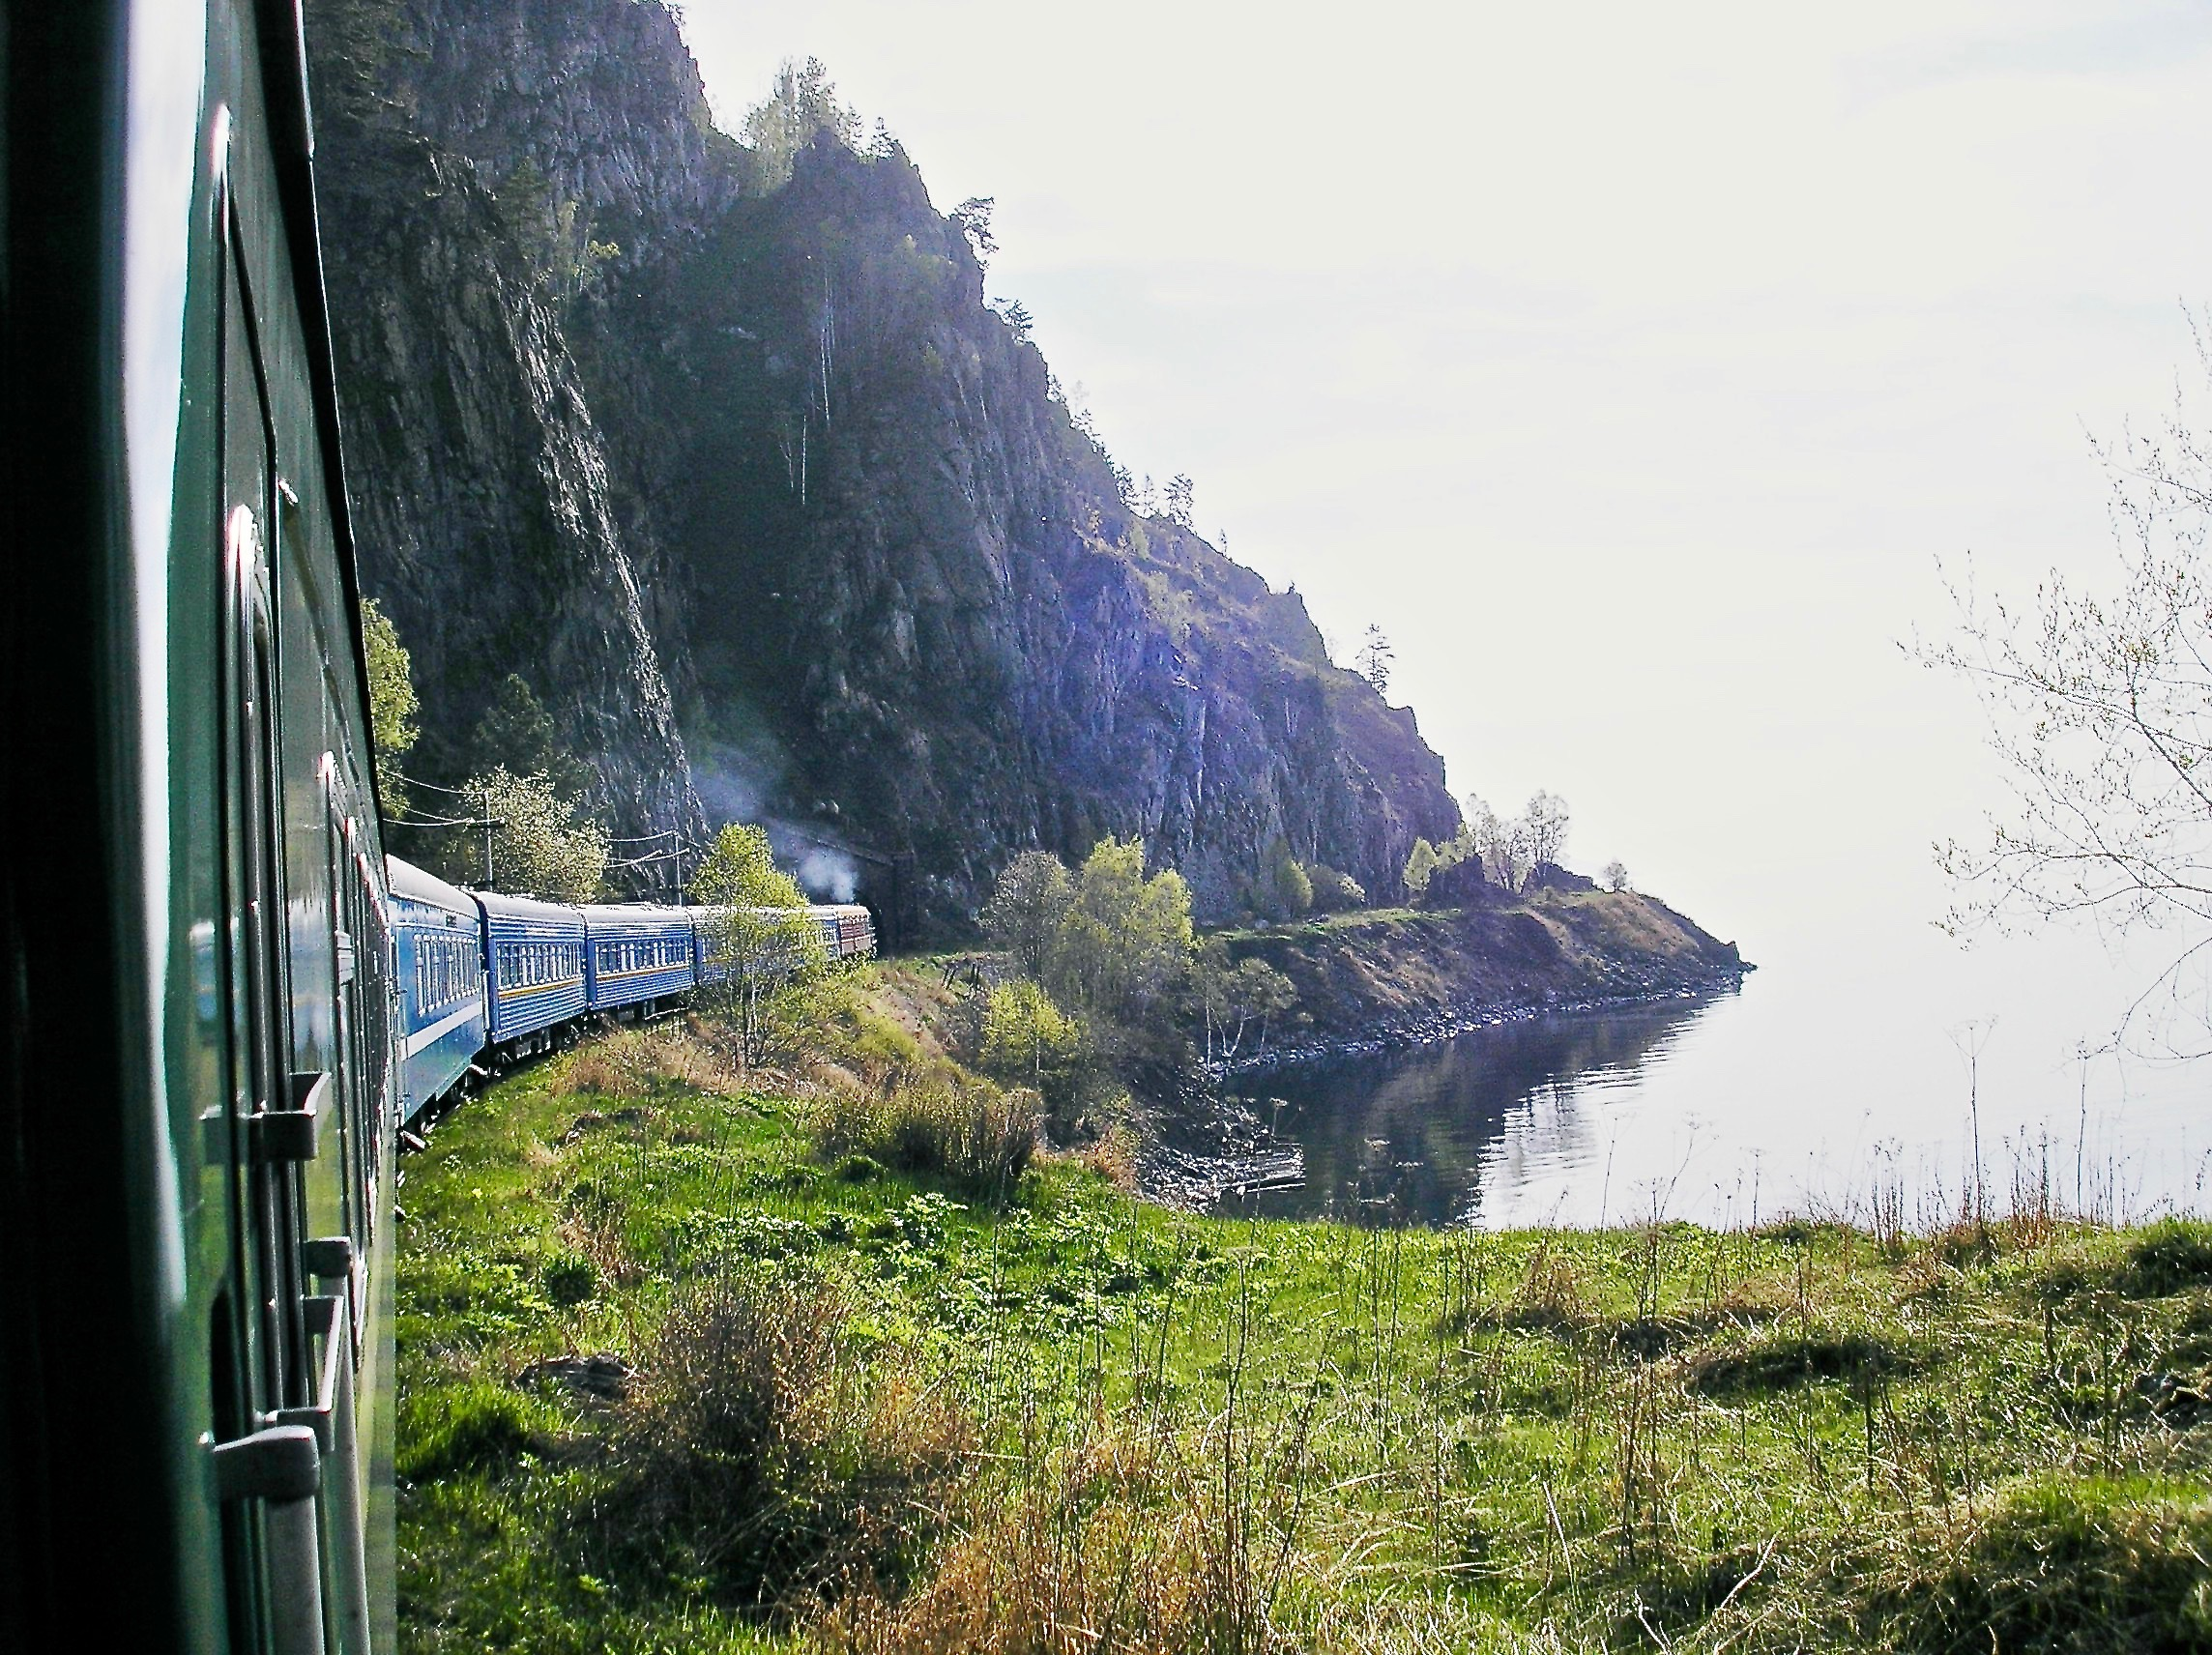 The famous Trans-Siberian Express passenger train, is seen in this picture skirting the rugged shores of Lake Baikal during midsummer, towards its final destination of Vladivostok.